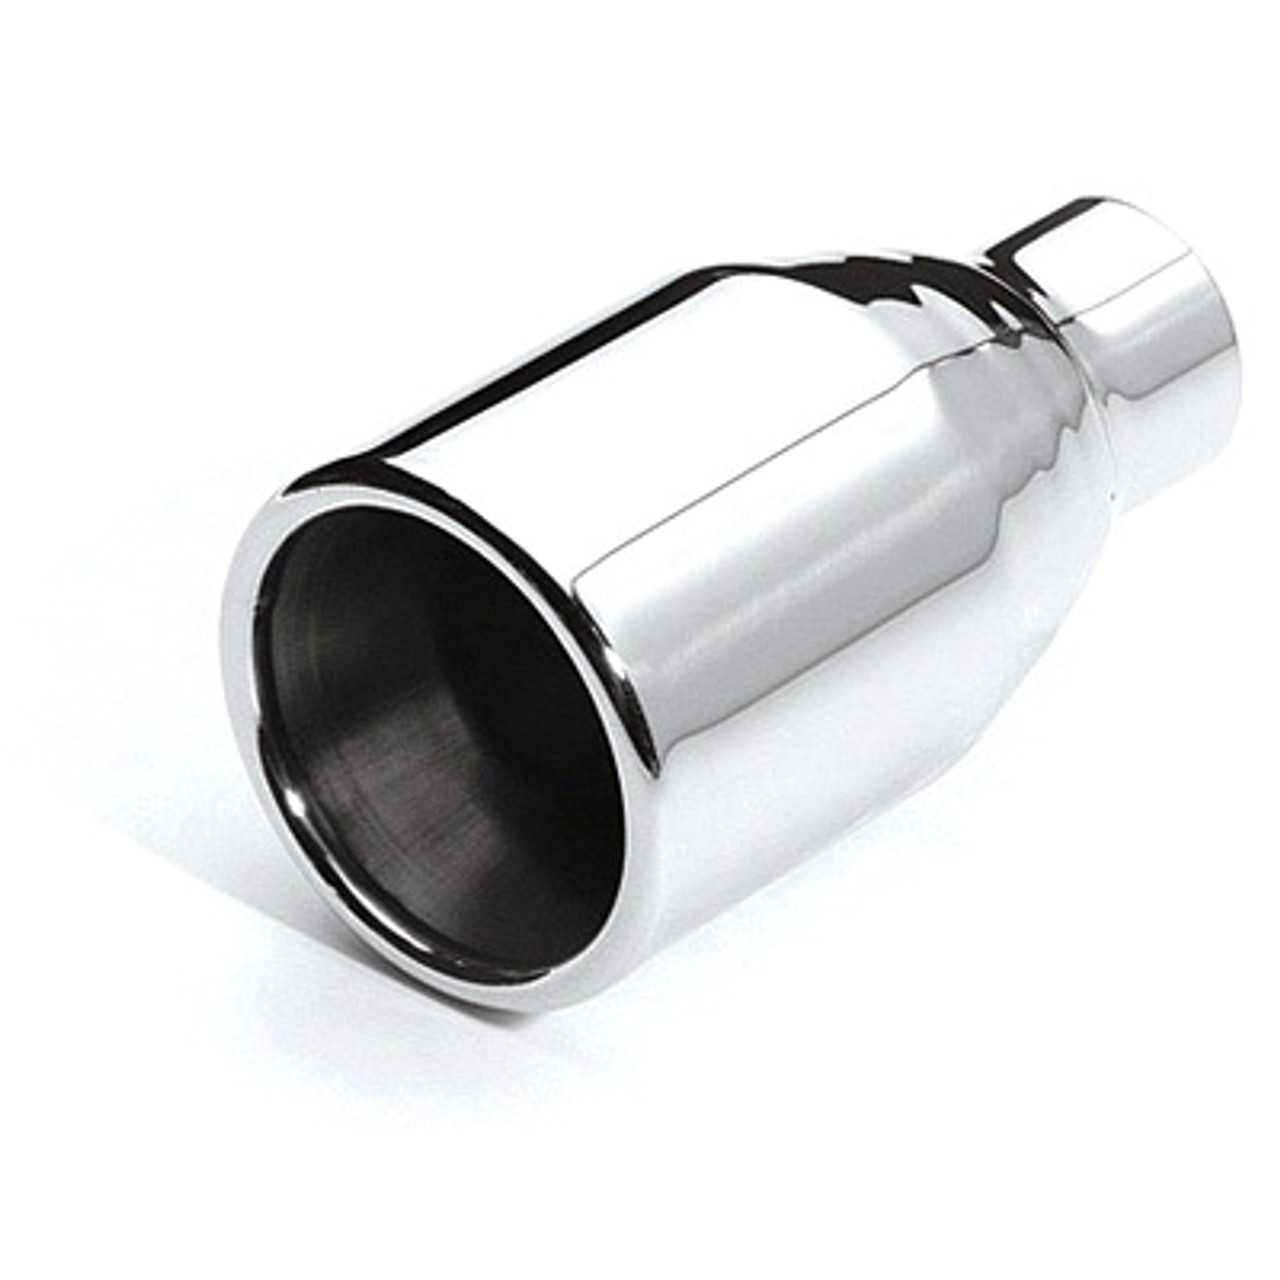 etc dt 019 stainless exhaust tip rolled edge straight 2 25 inlet 4 5 outlet